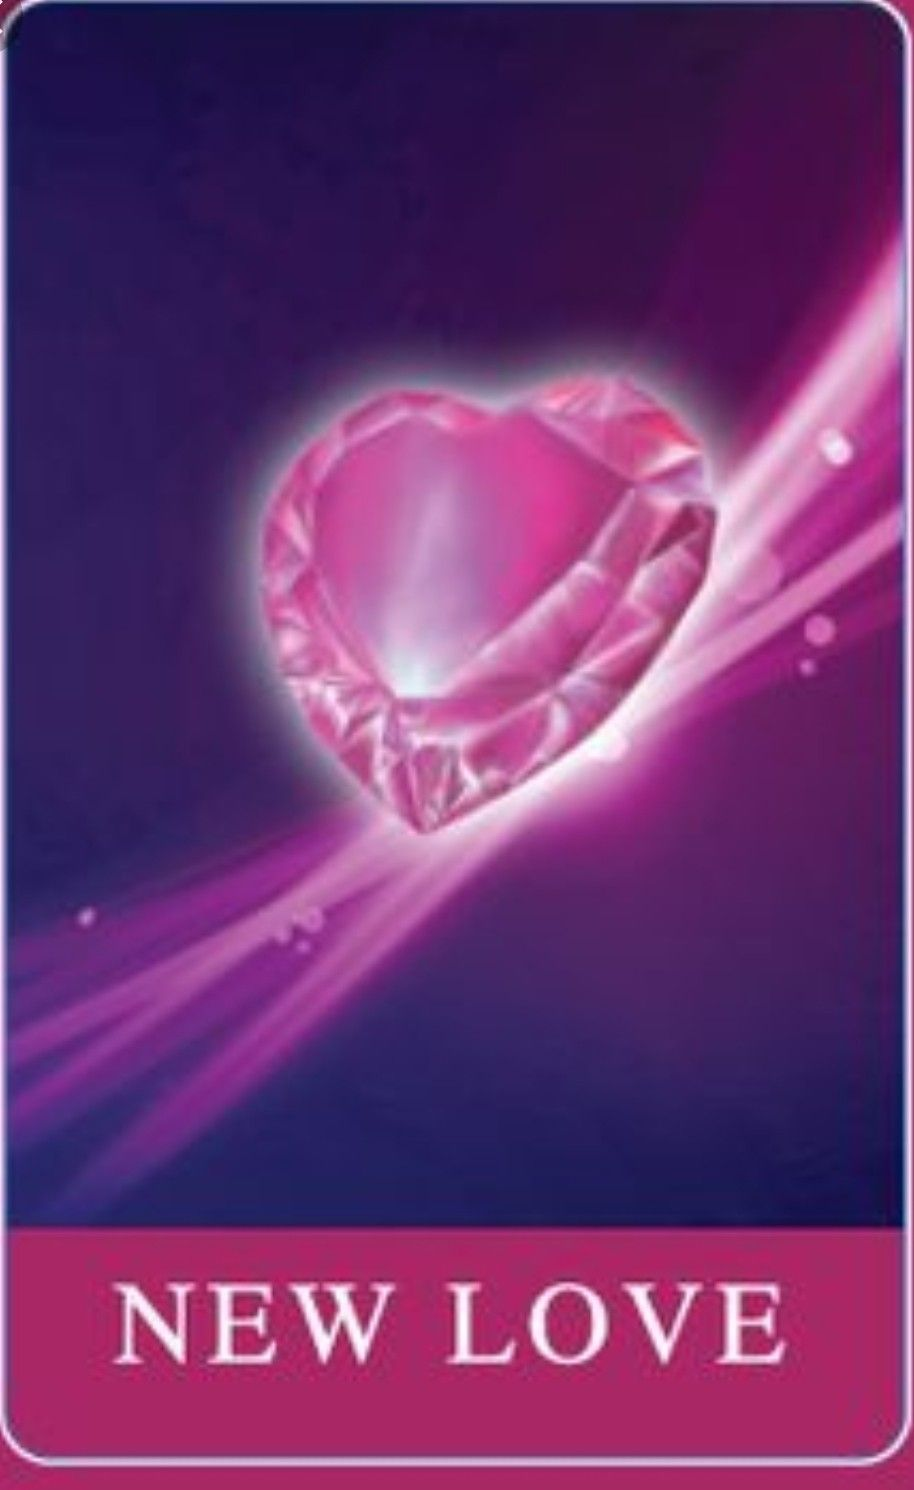 Love Oracle Cards By Amira Celon New Love Cupid Is Ready To Stirke For All Who Comes Across This Ca Positive Affirmation Cards Love Oracle First Love Quotes